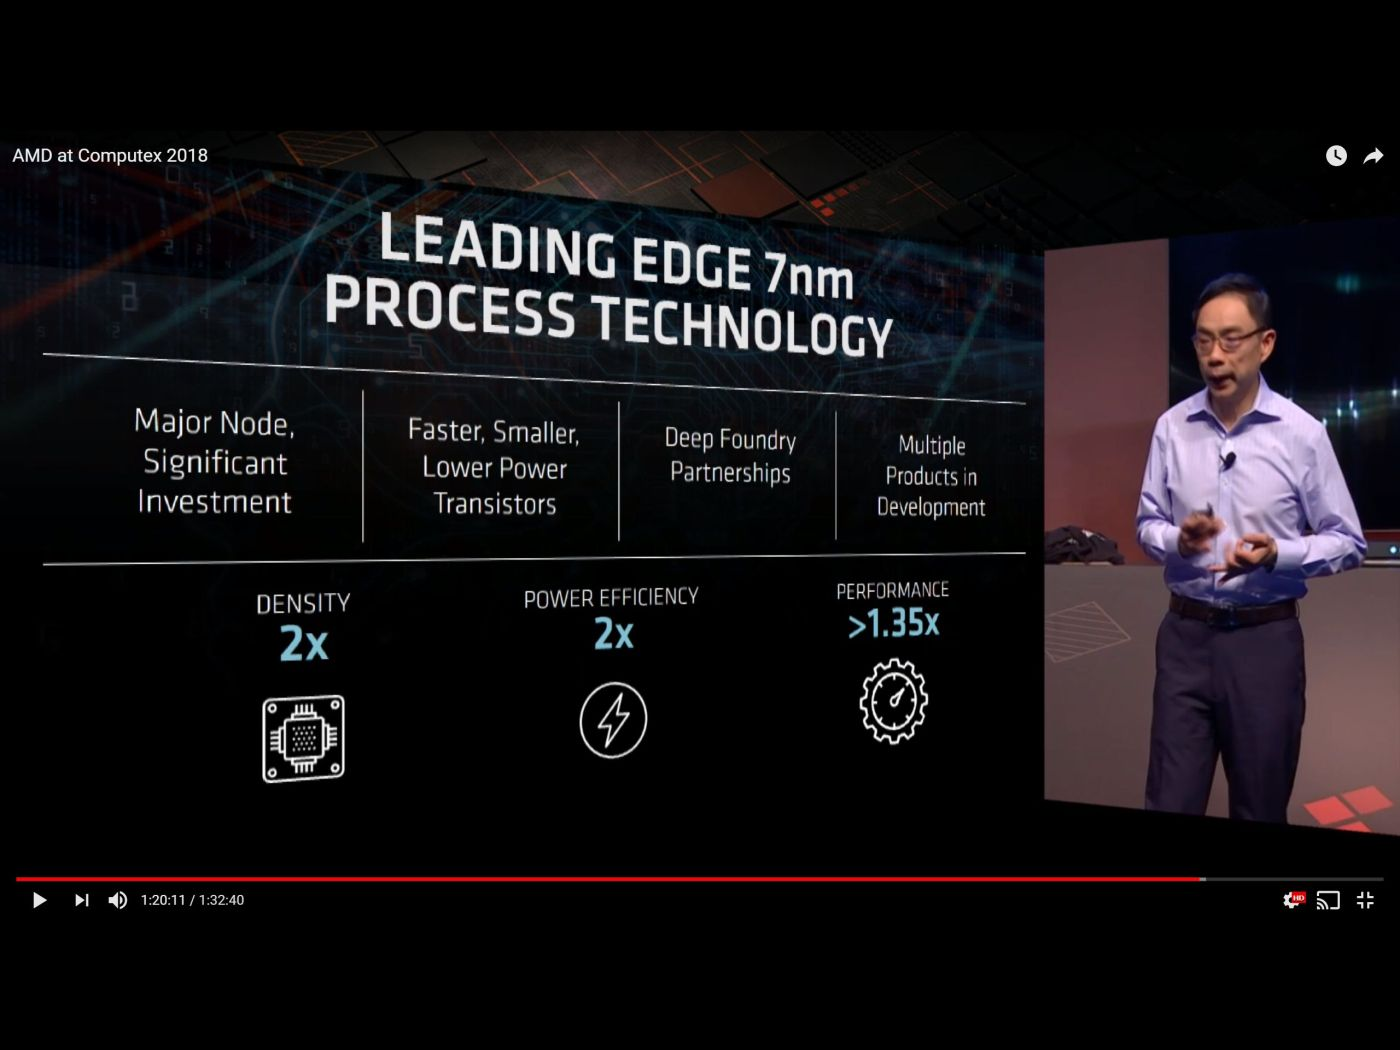 AMD shows Vega 7nm 32GB HBM2